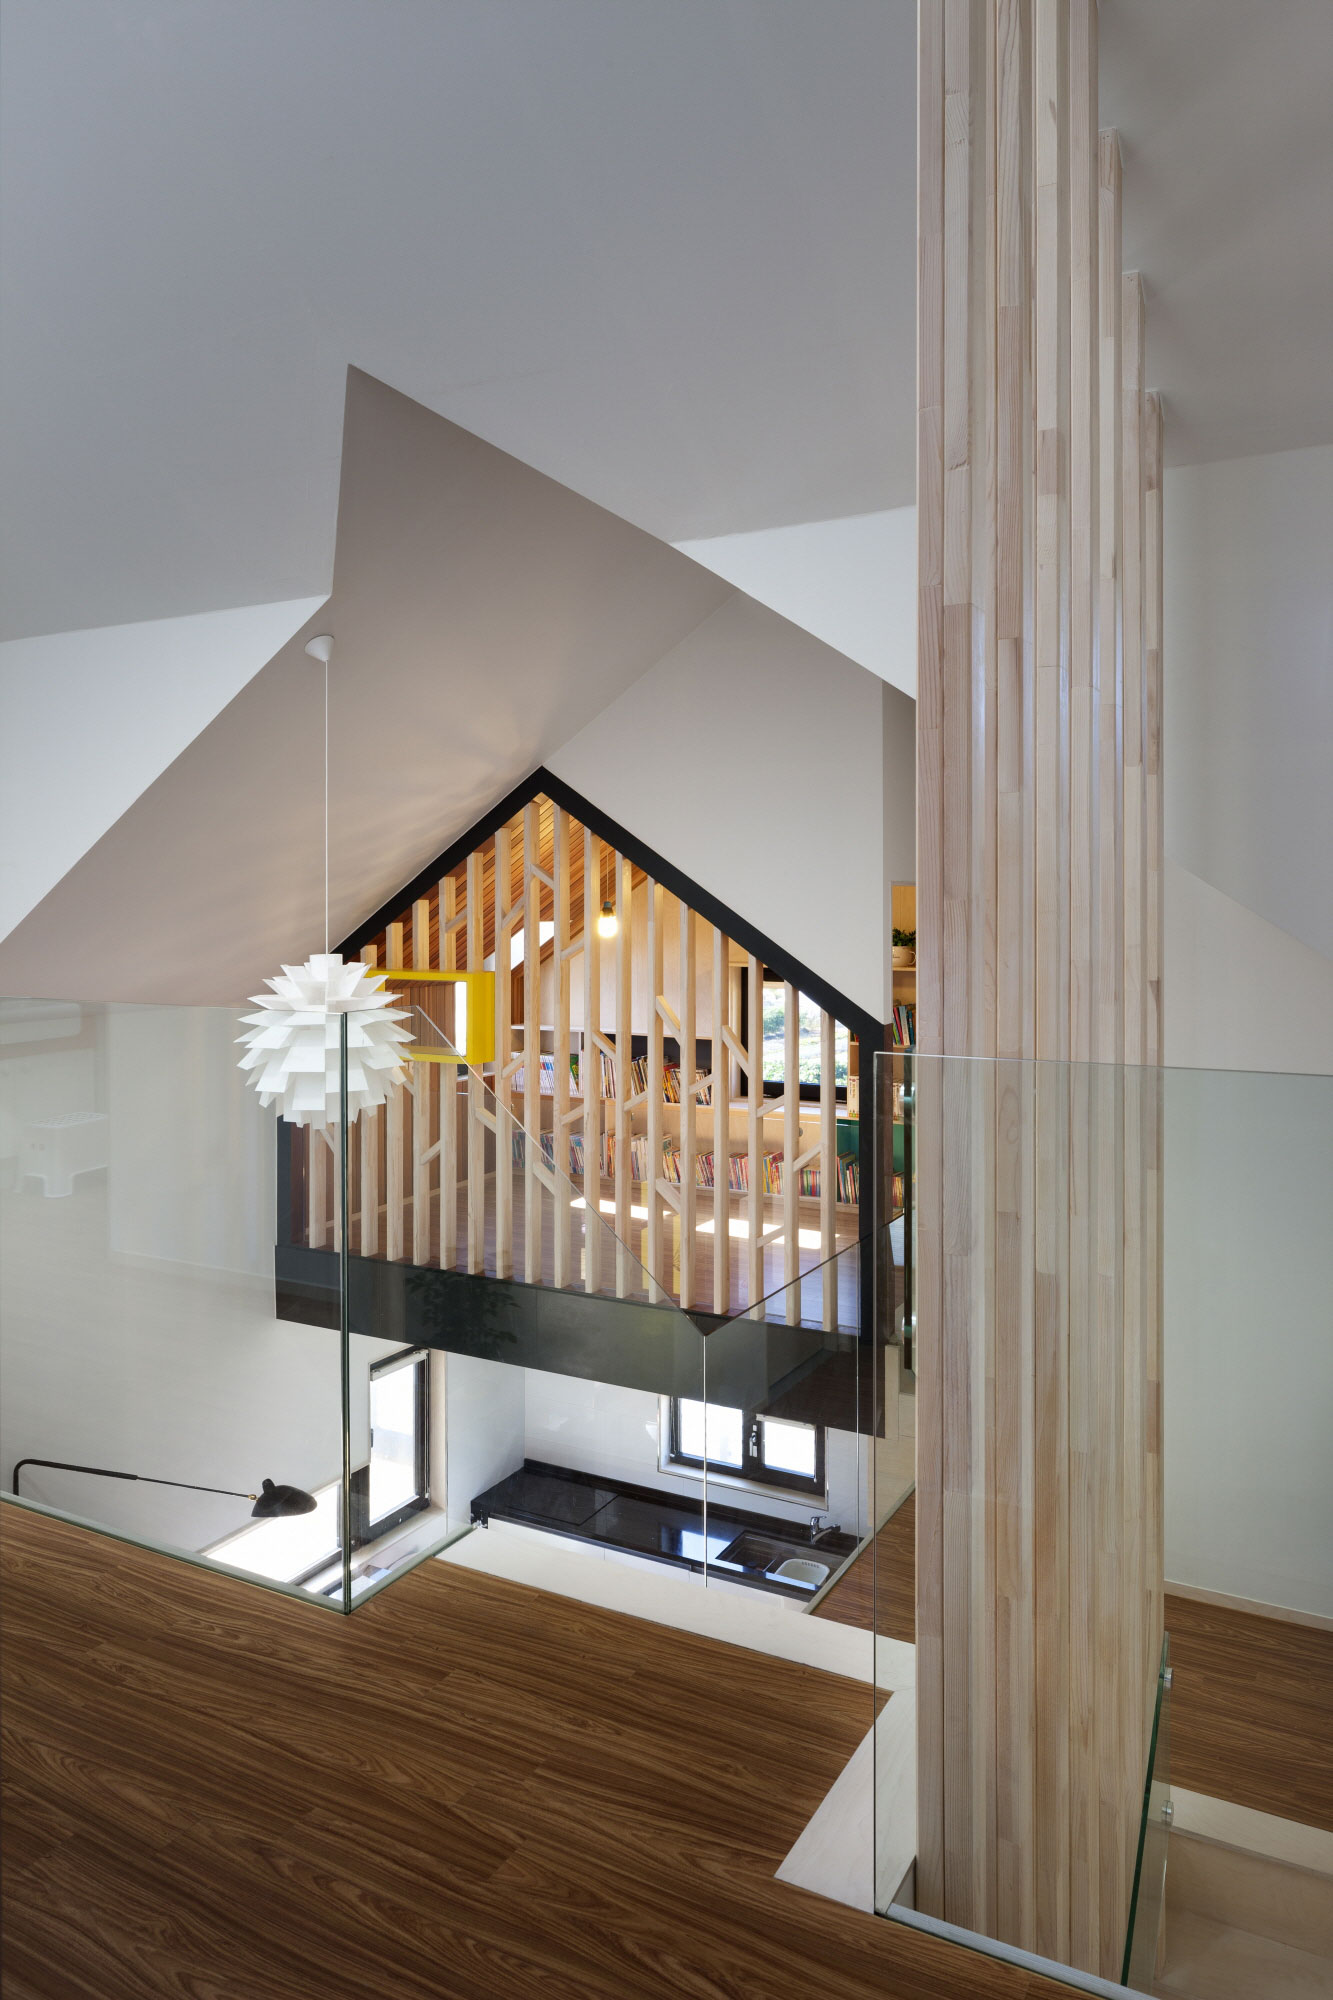 Iksan T Shaped House in South Korea by KDDH architects-15